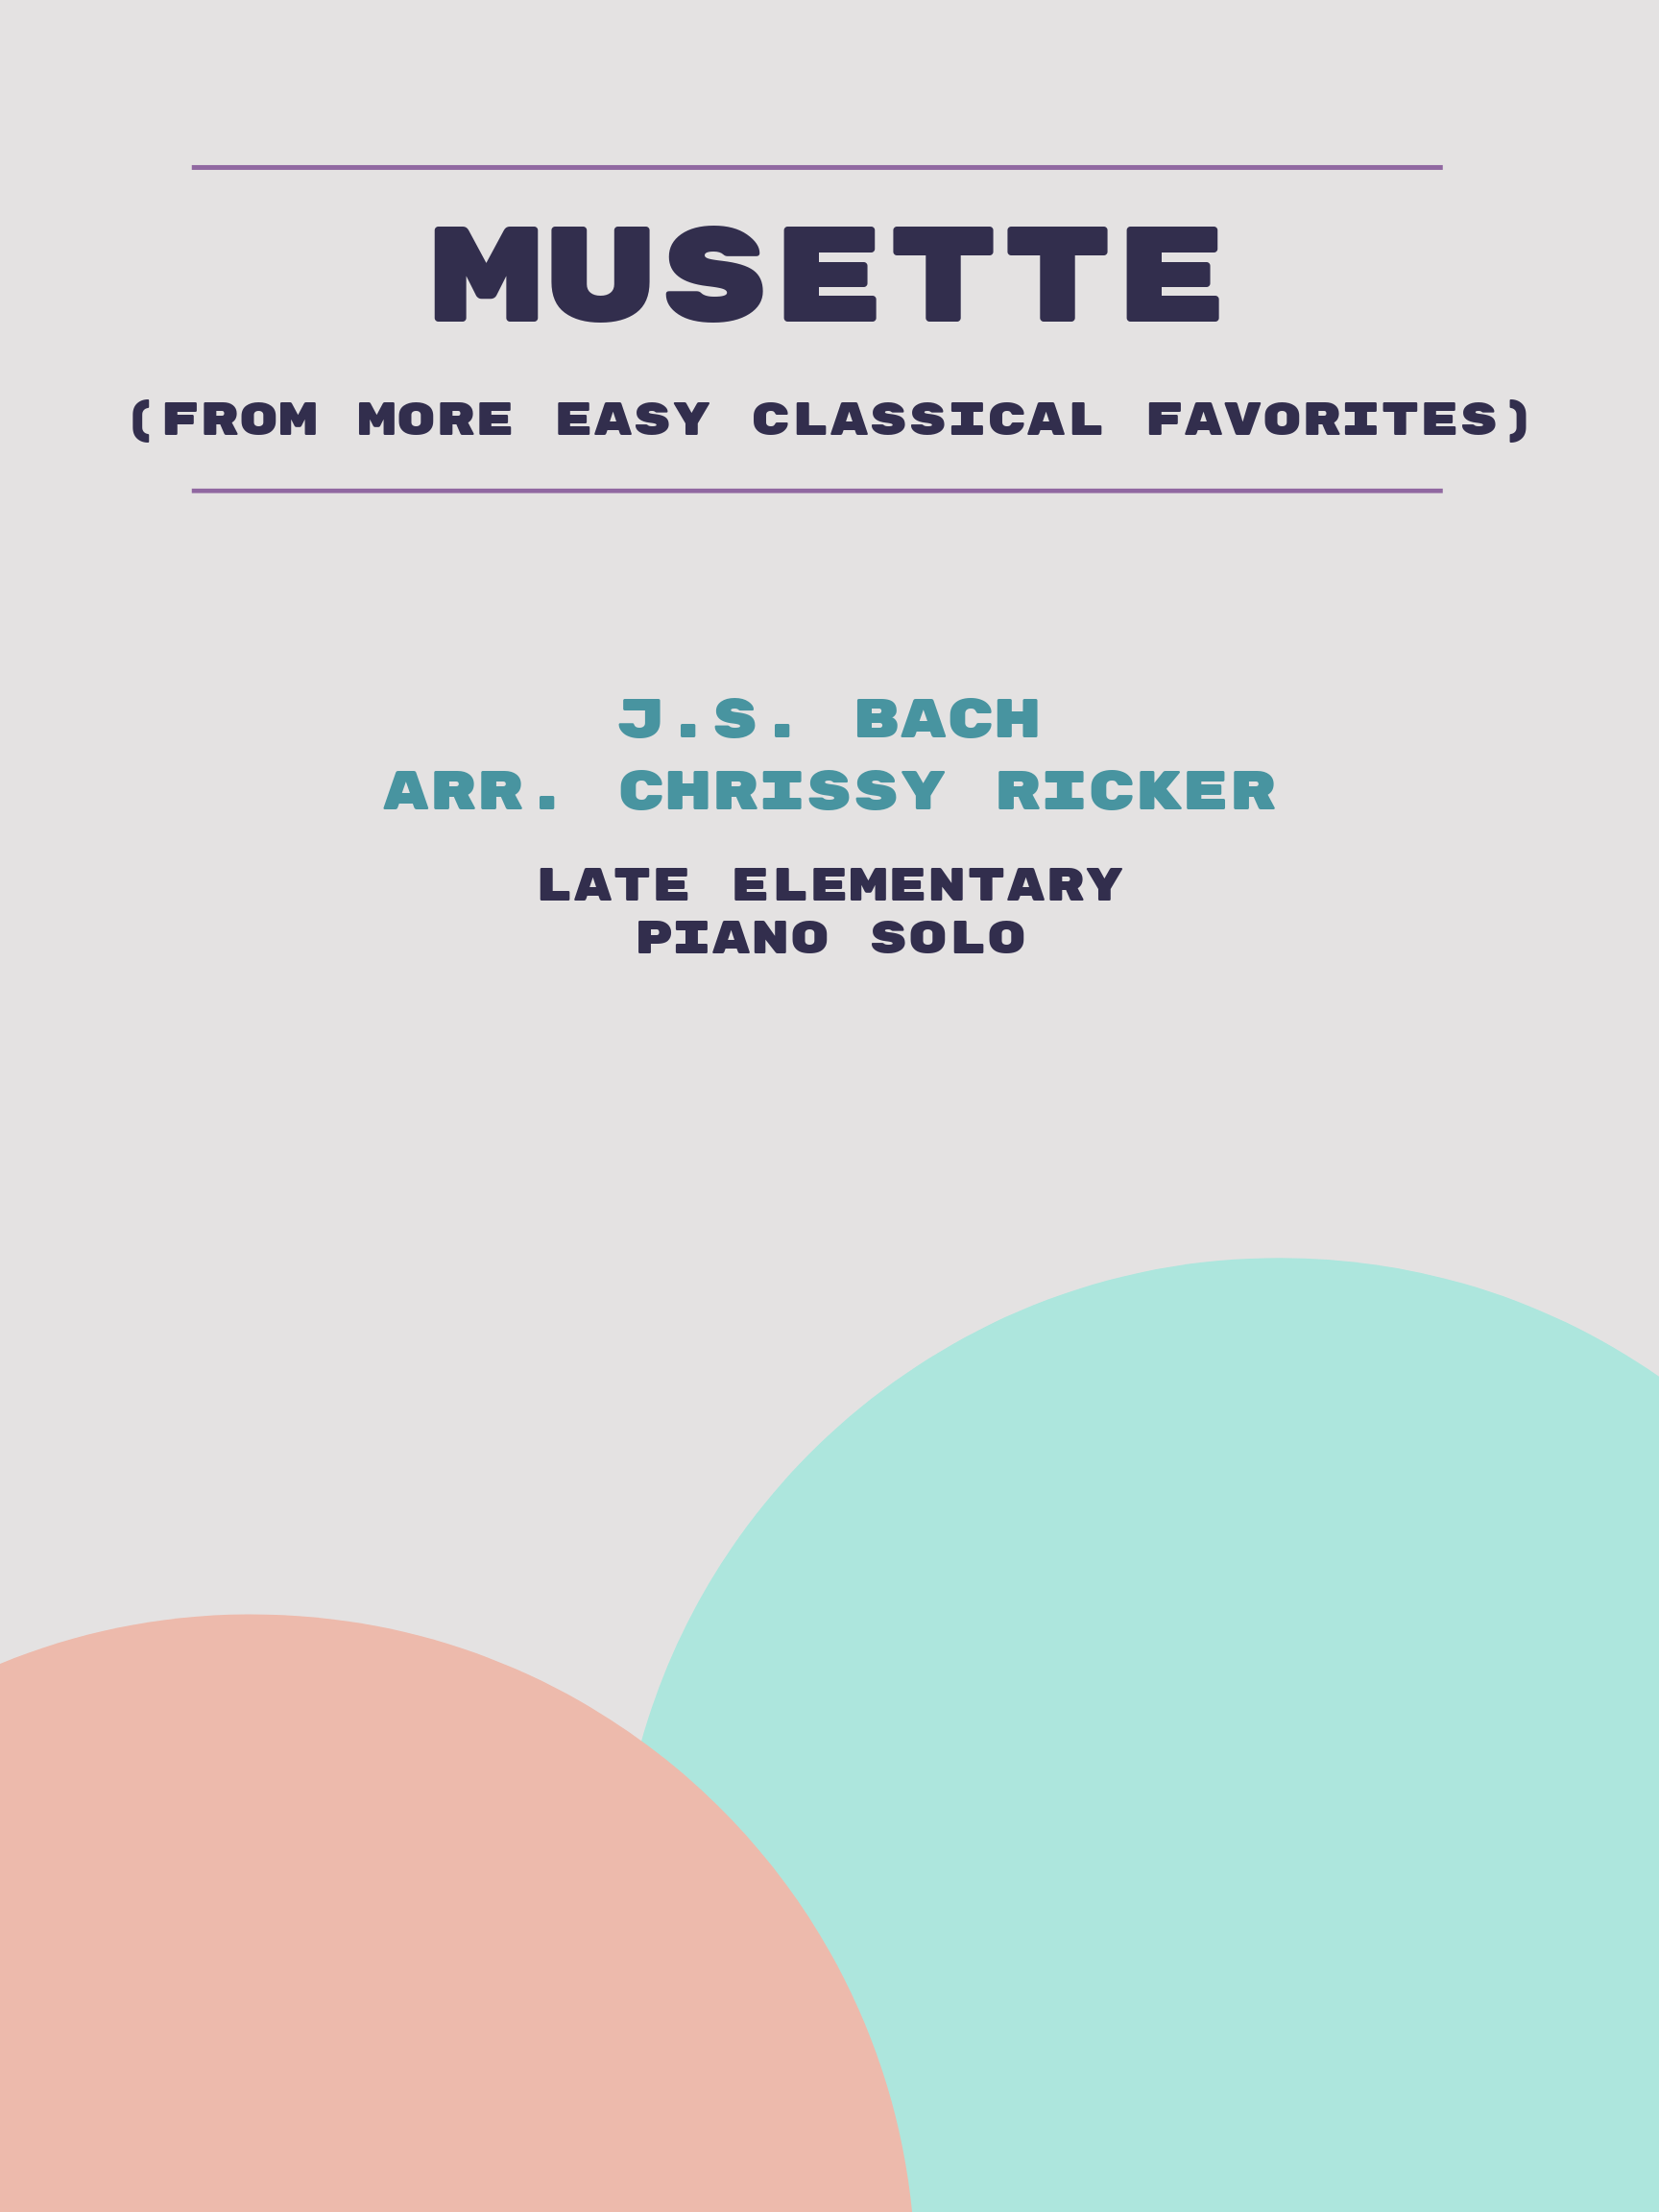 Musette by J.S. Bach